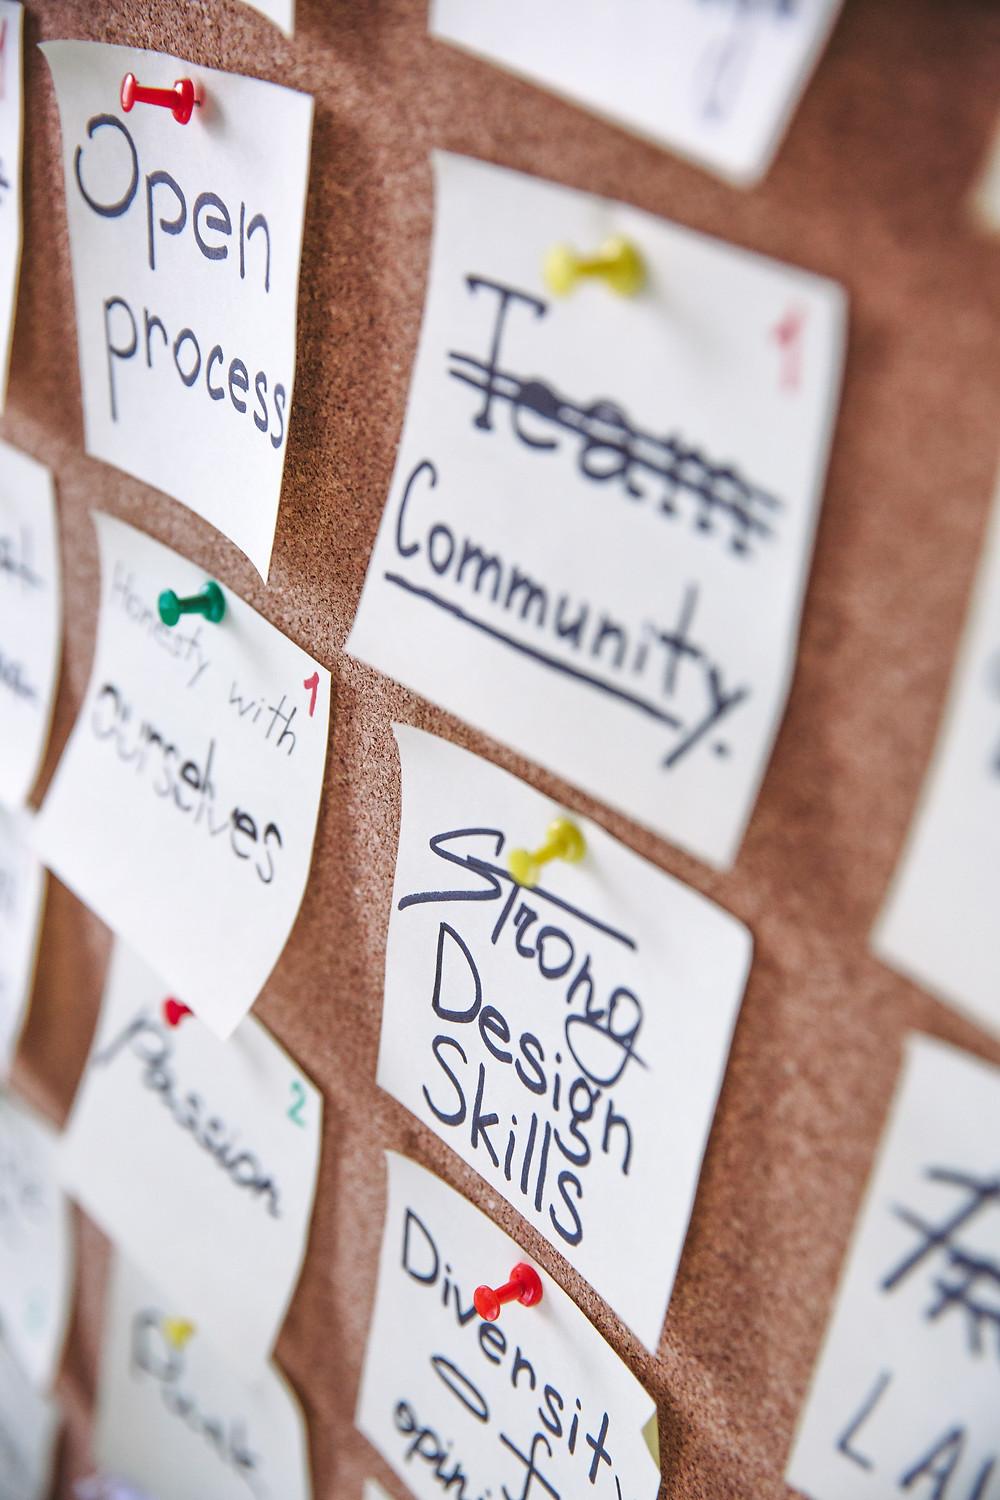 """A series of post it notes pinned to a cork board, reading """"Open process"""", """"community"""", """"Strong design"""", """"Ourselves"""""""